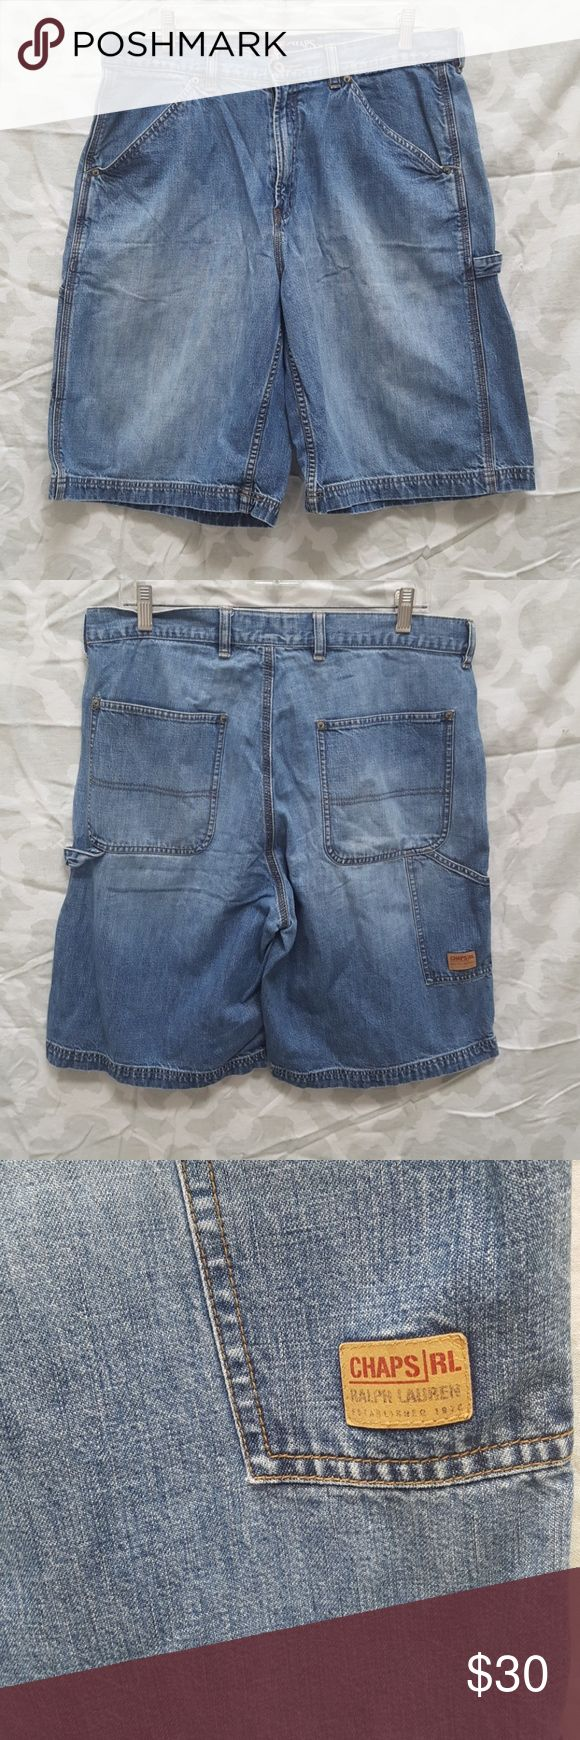 Mens Chaps Ralph Lauren Carpenter Denim Shorts For sale is a used pair of vtg Mens Chaps Ralph Lauren Denim Carpenter Shorts. Waist size 34.   Shorts are in good condition for age.   Offers welcomed using offer button.   NO TRADES.  NO LOWBALLING. Chaps Ralph Lauren Shorts Jean Shorts